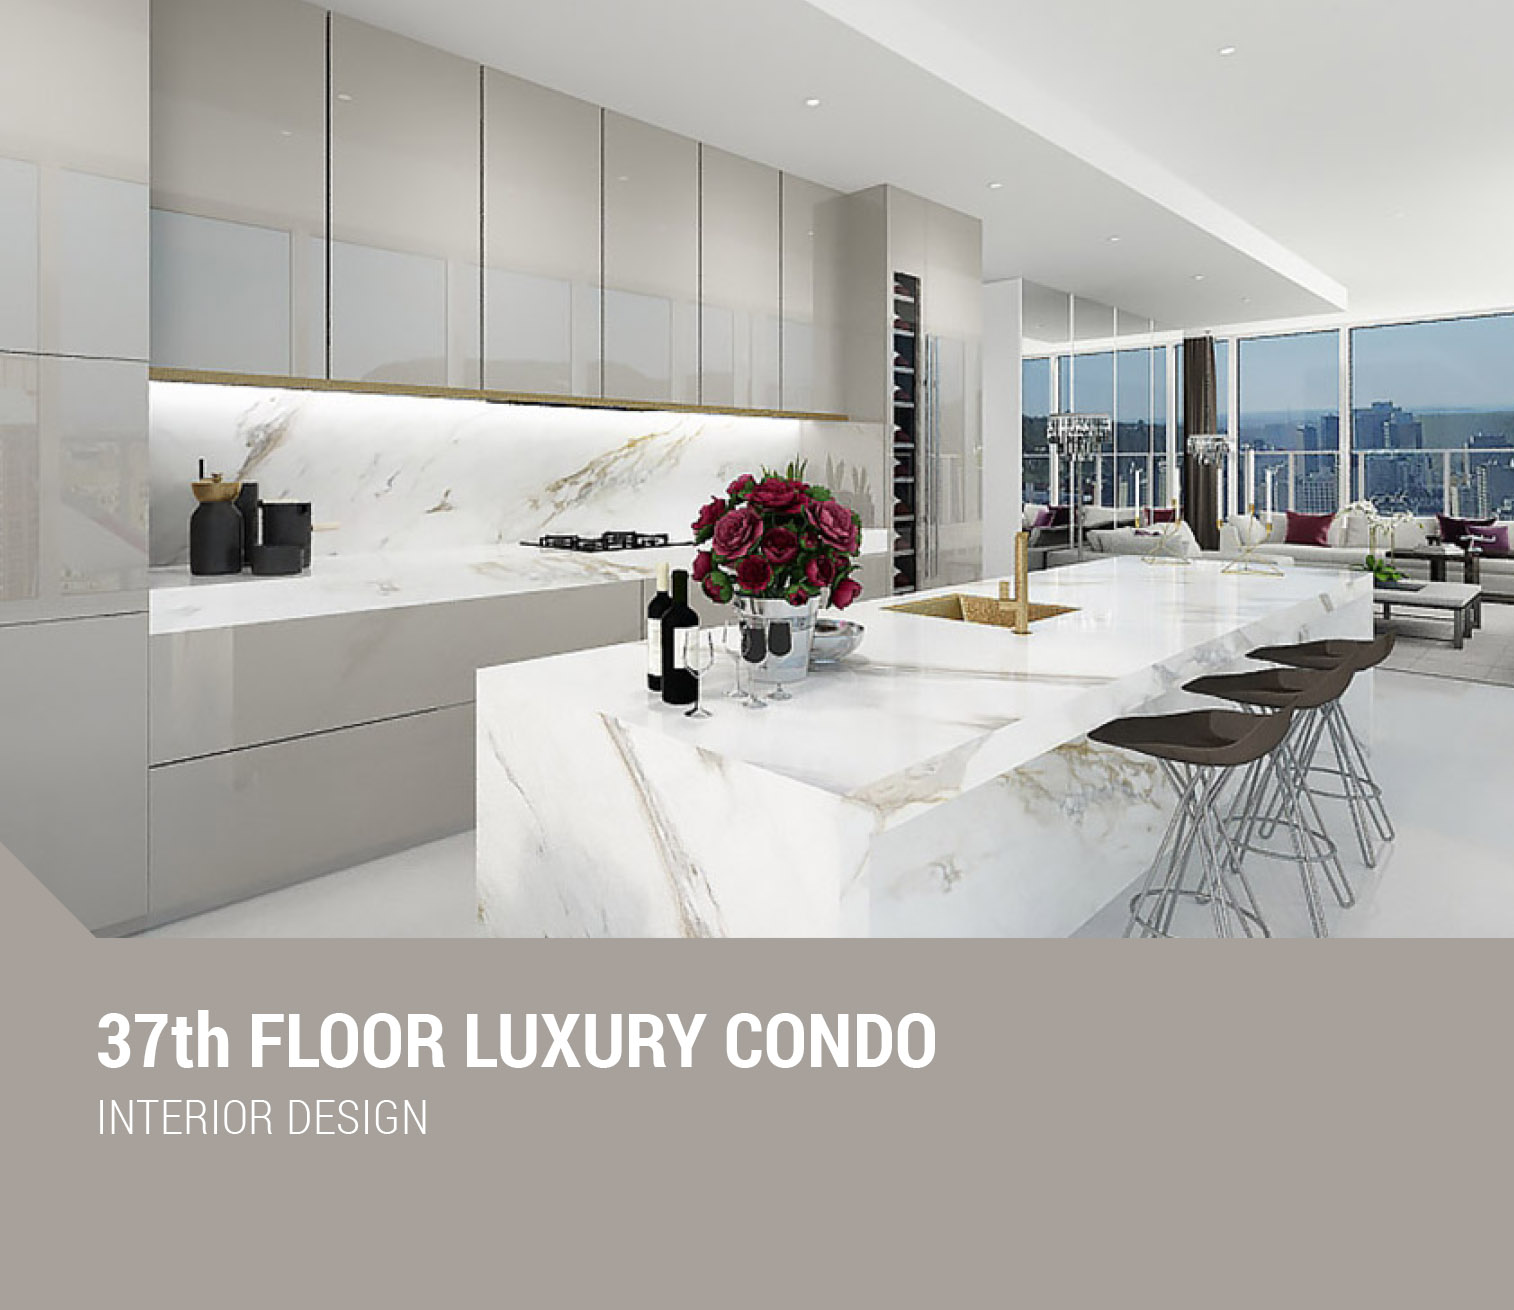 Schema Dimitra Chrona designer, creative director, architectural, 3D visualization, 3D Rendering, branding websites, digital, graphic design, interior design, real estate, luxury property, staging, museum, virtual, art, brochures, exhibitions, logotype, logo, Canada Quebec Montreal Athens Greece schema design 37th floor luxury condo small.jpg